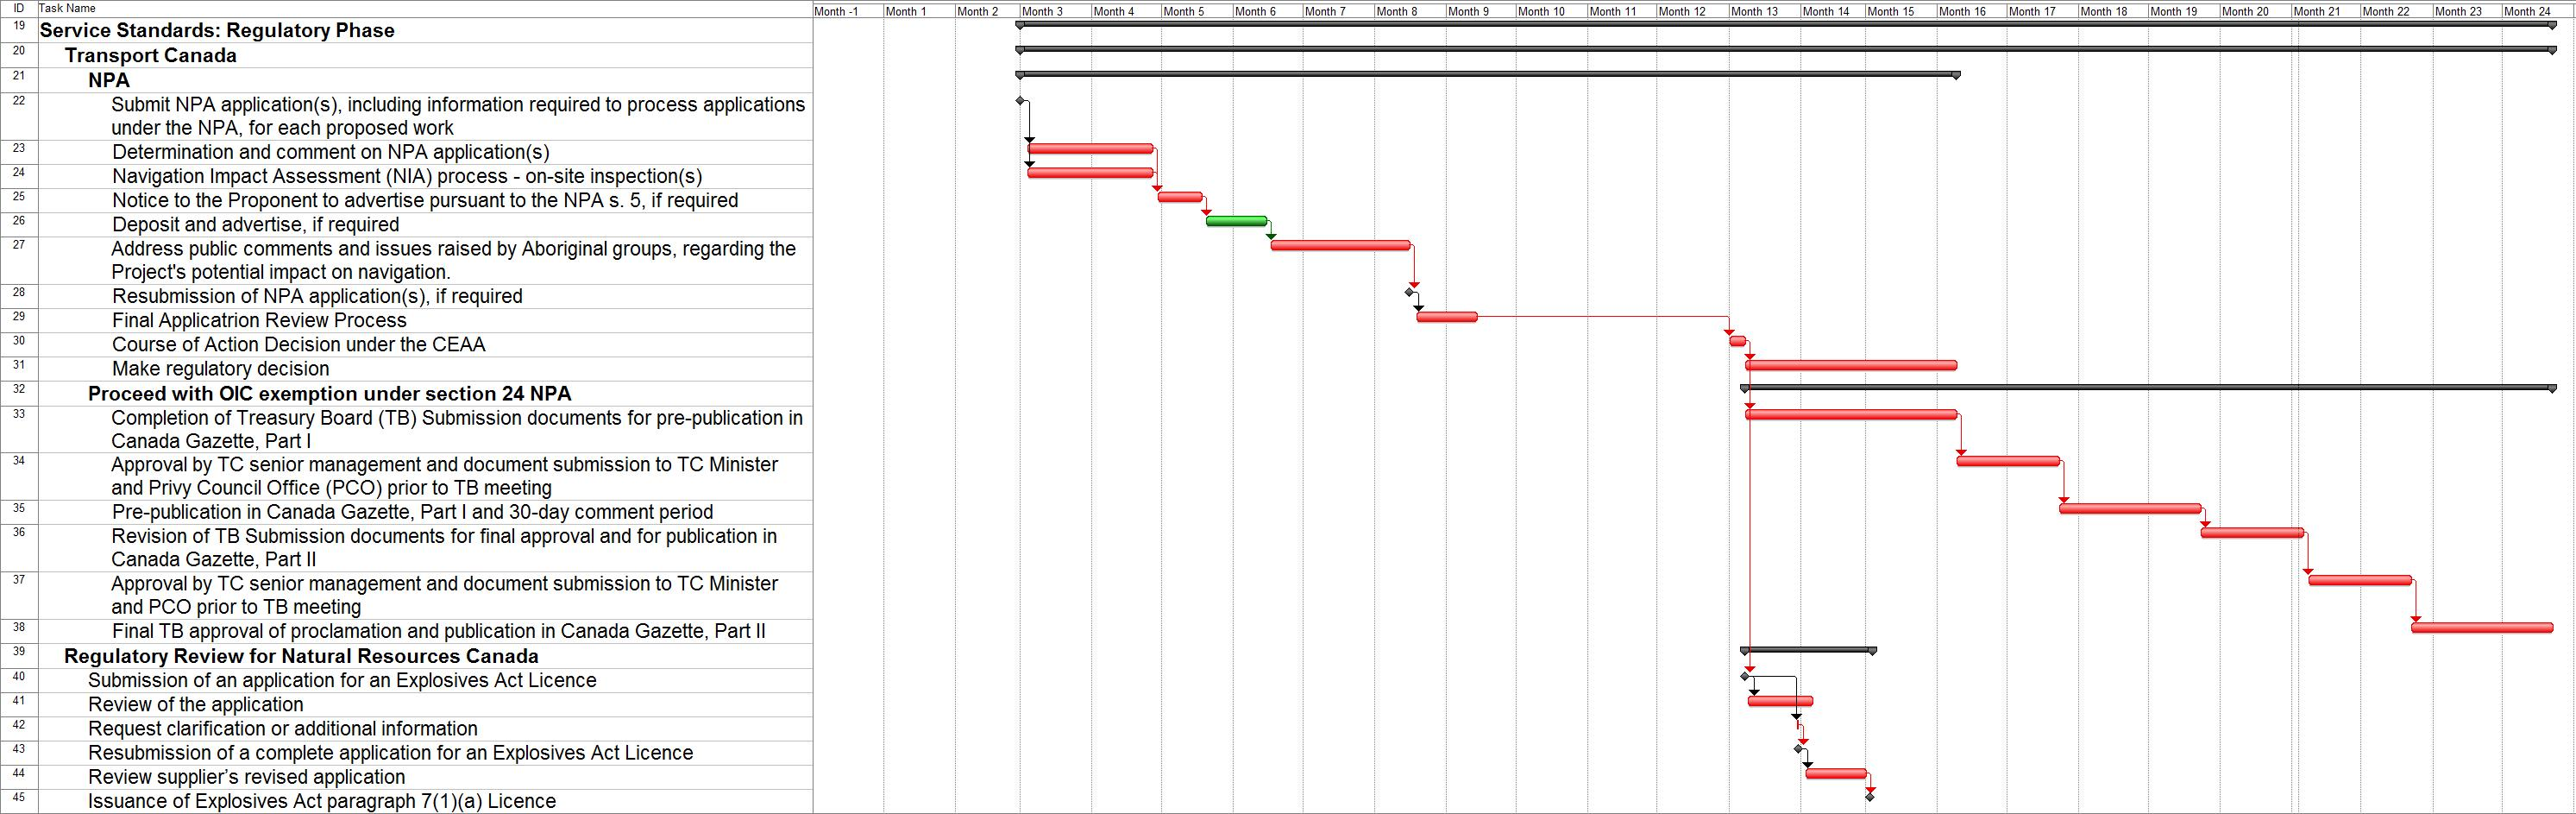 Gantt Chart: Target Timelines for the Regulatory Phase